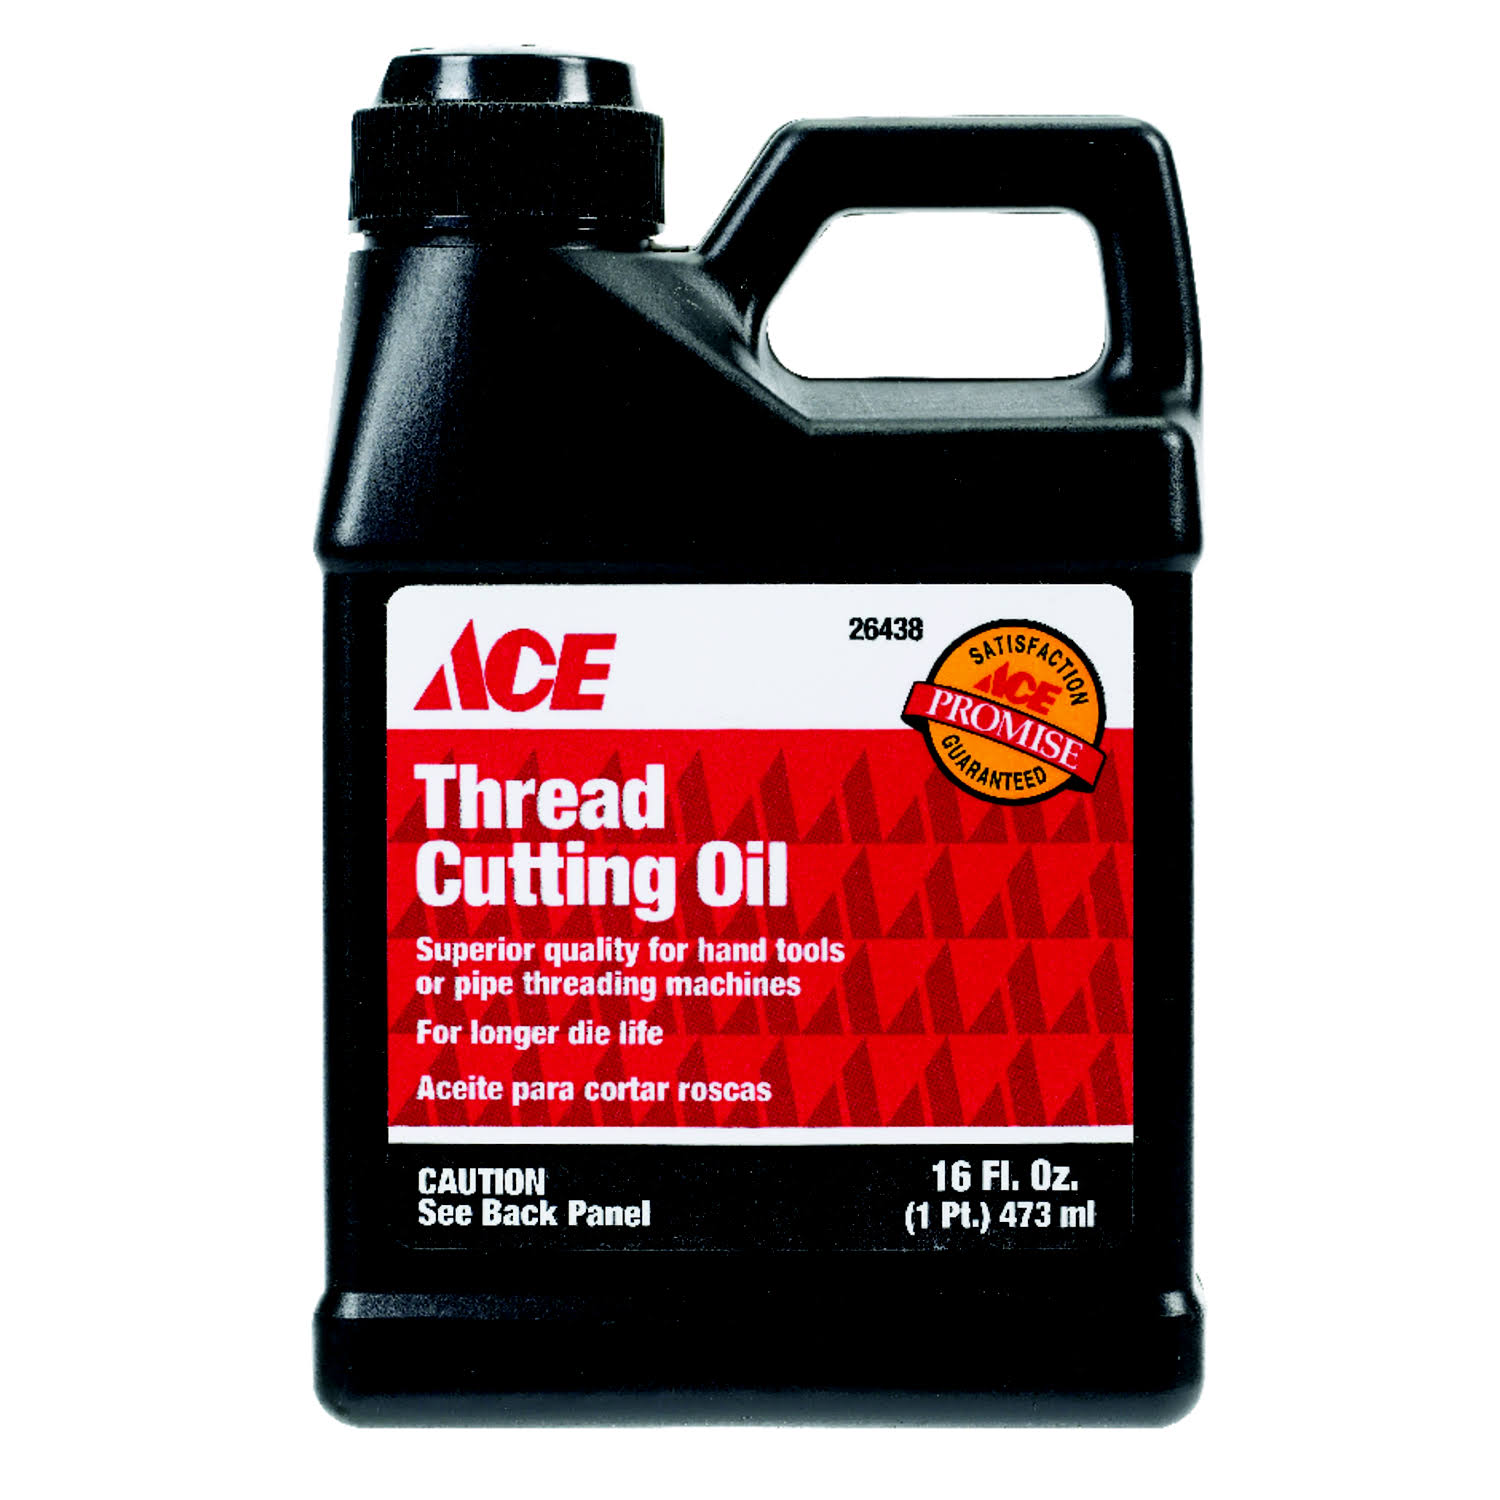 Ace Thread Cutting Oil 16 oz. 016070